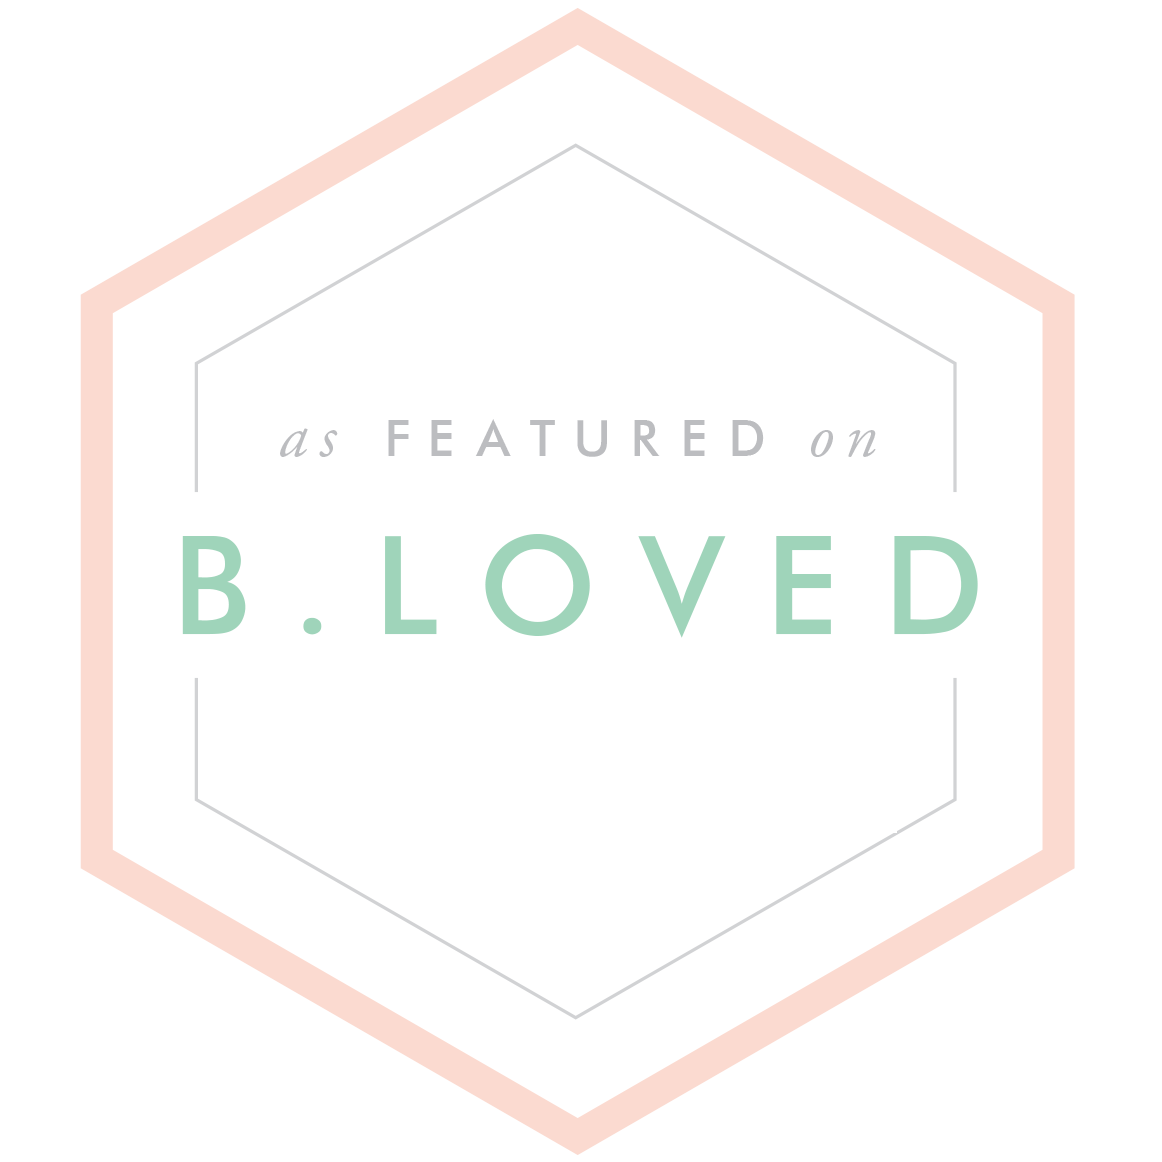 B. Loved blog feature